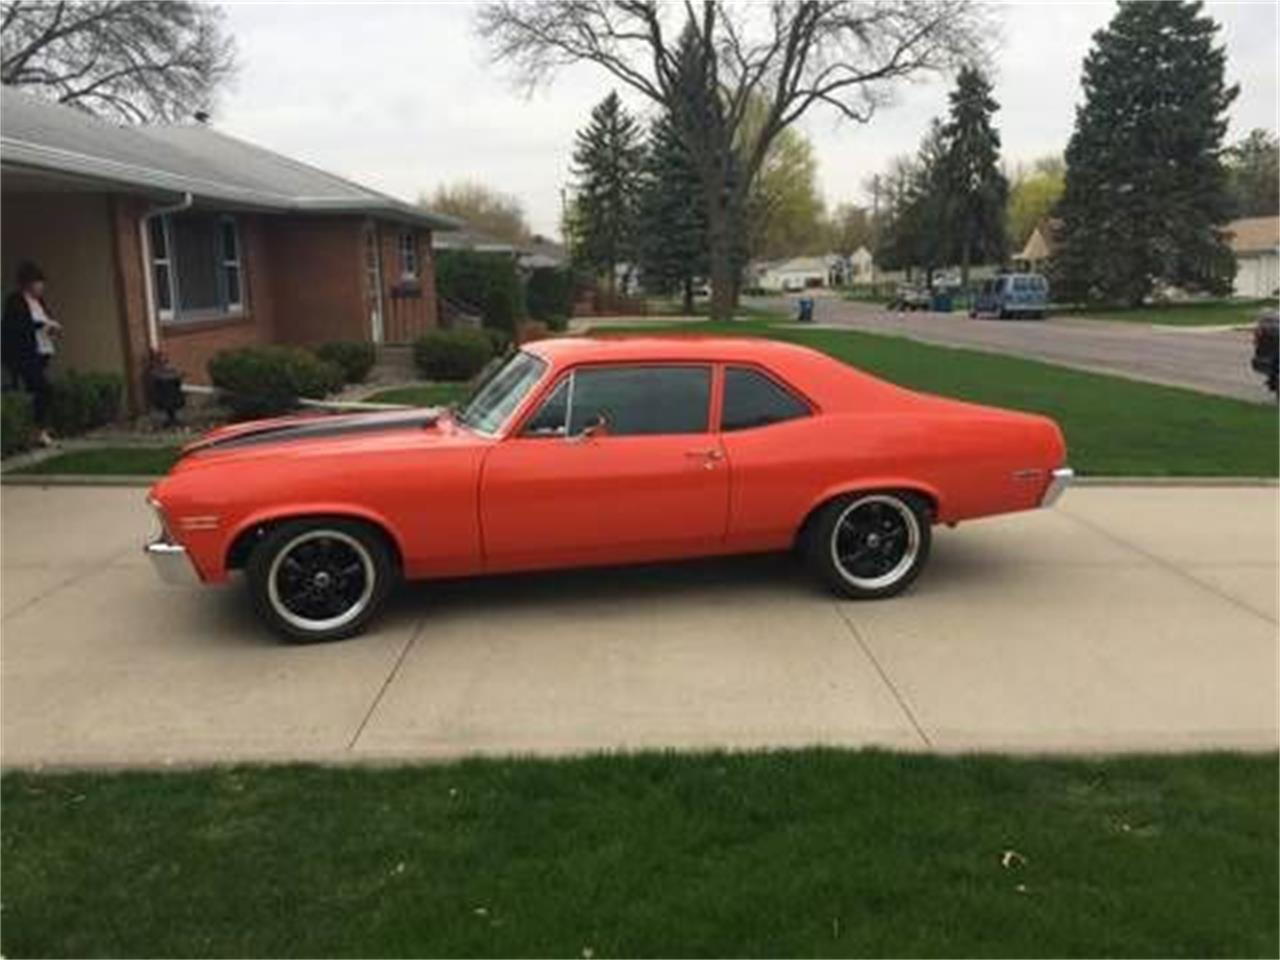 Large Picture of '70 Chevrolet Nova - $34,995.00 Offered by Classic Car Deals - NZWN